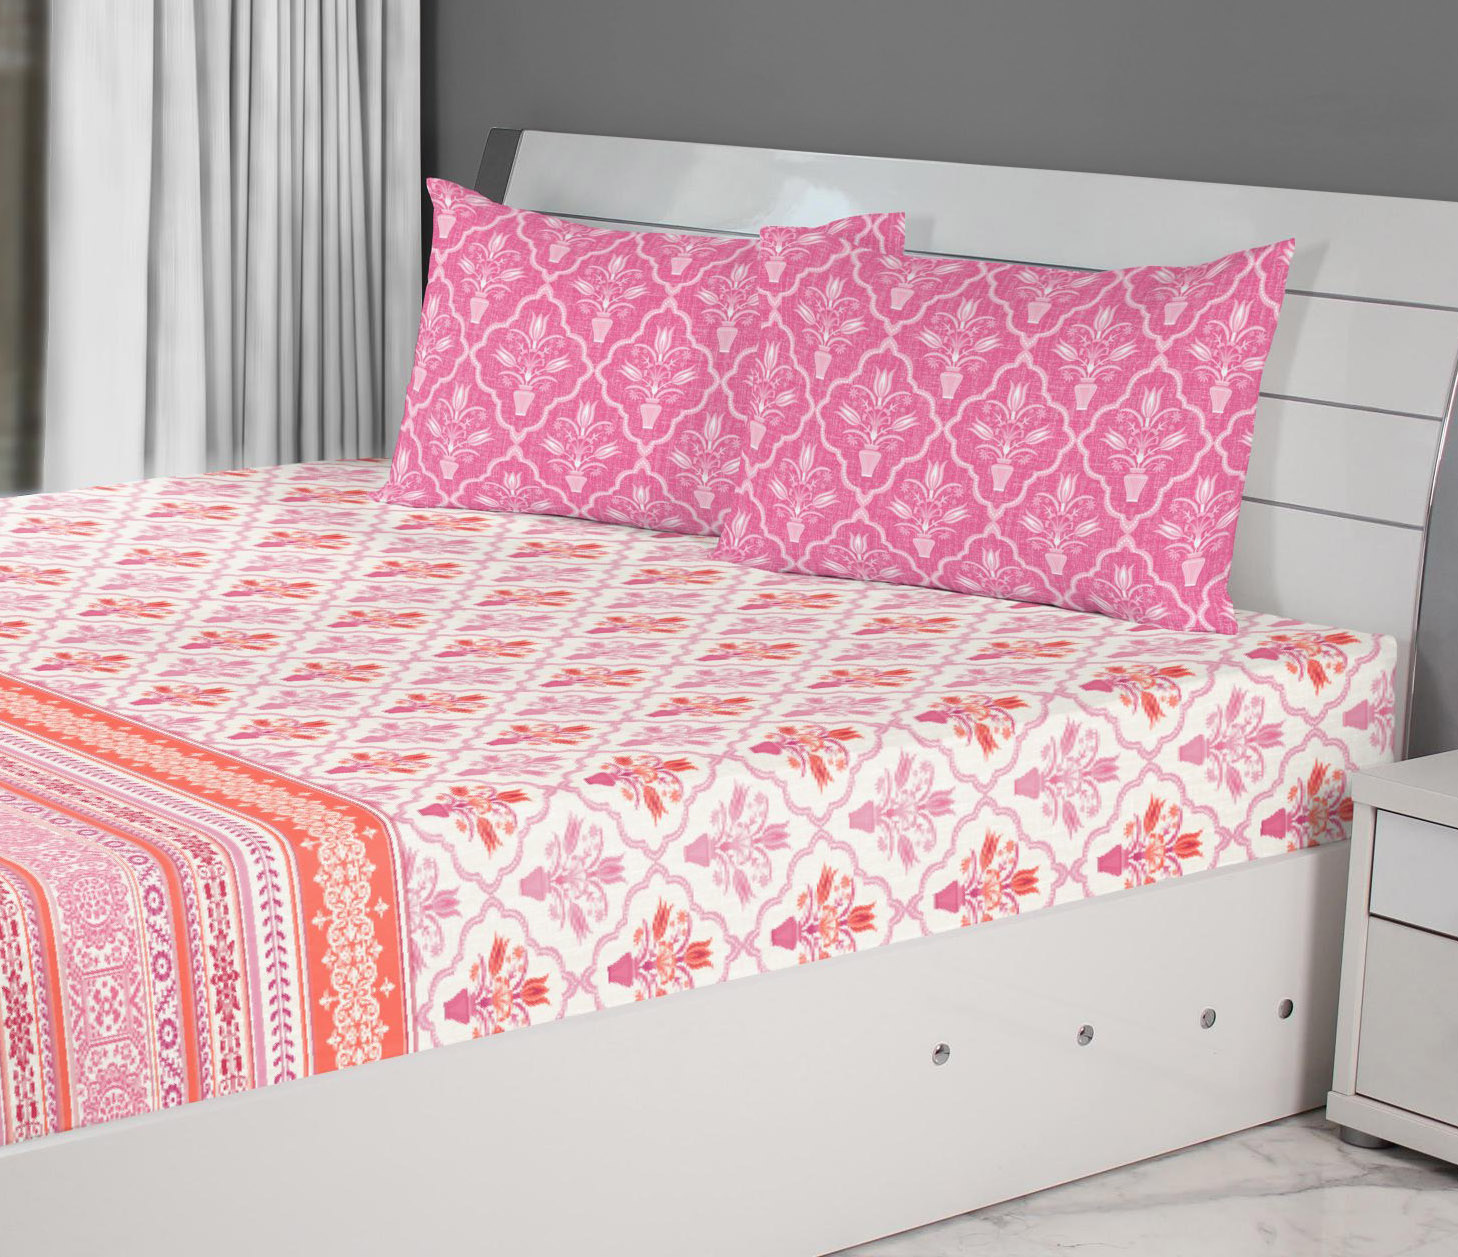 Emilia Cotton Double Bedsheets in Rose Colour by Living Essence